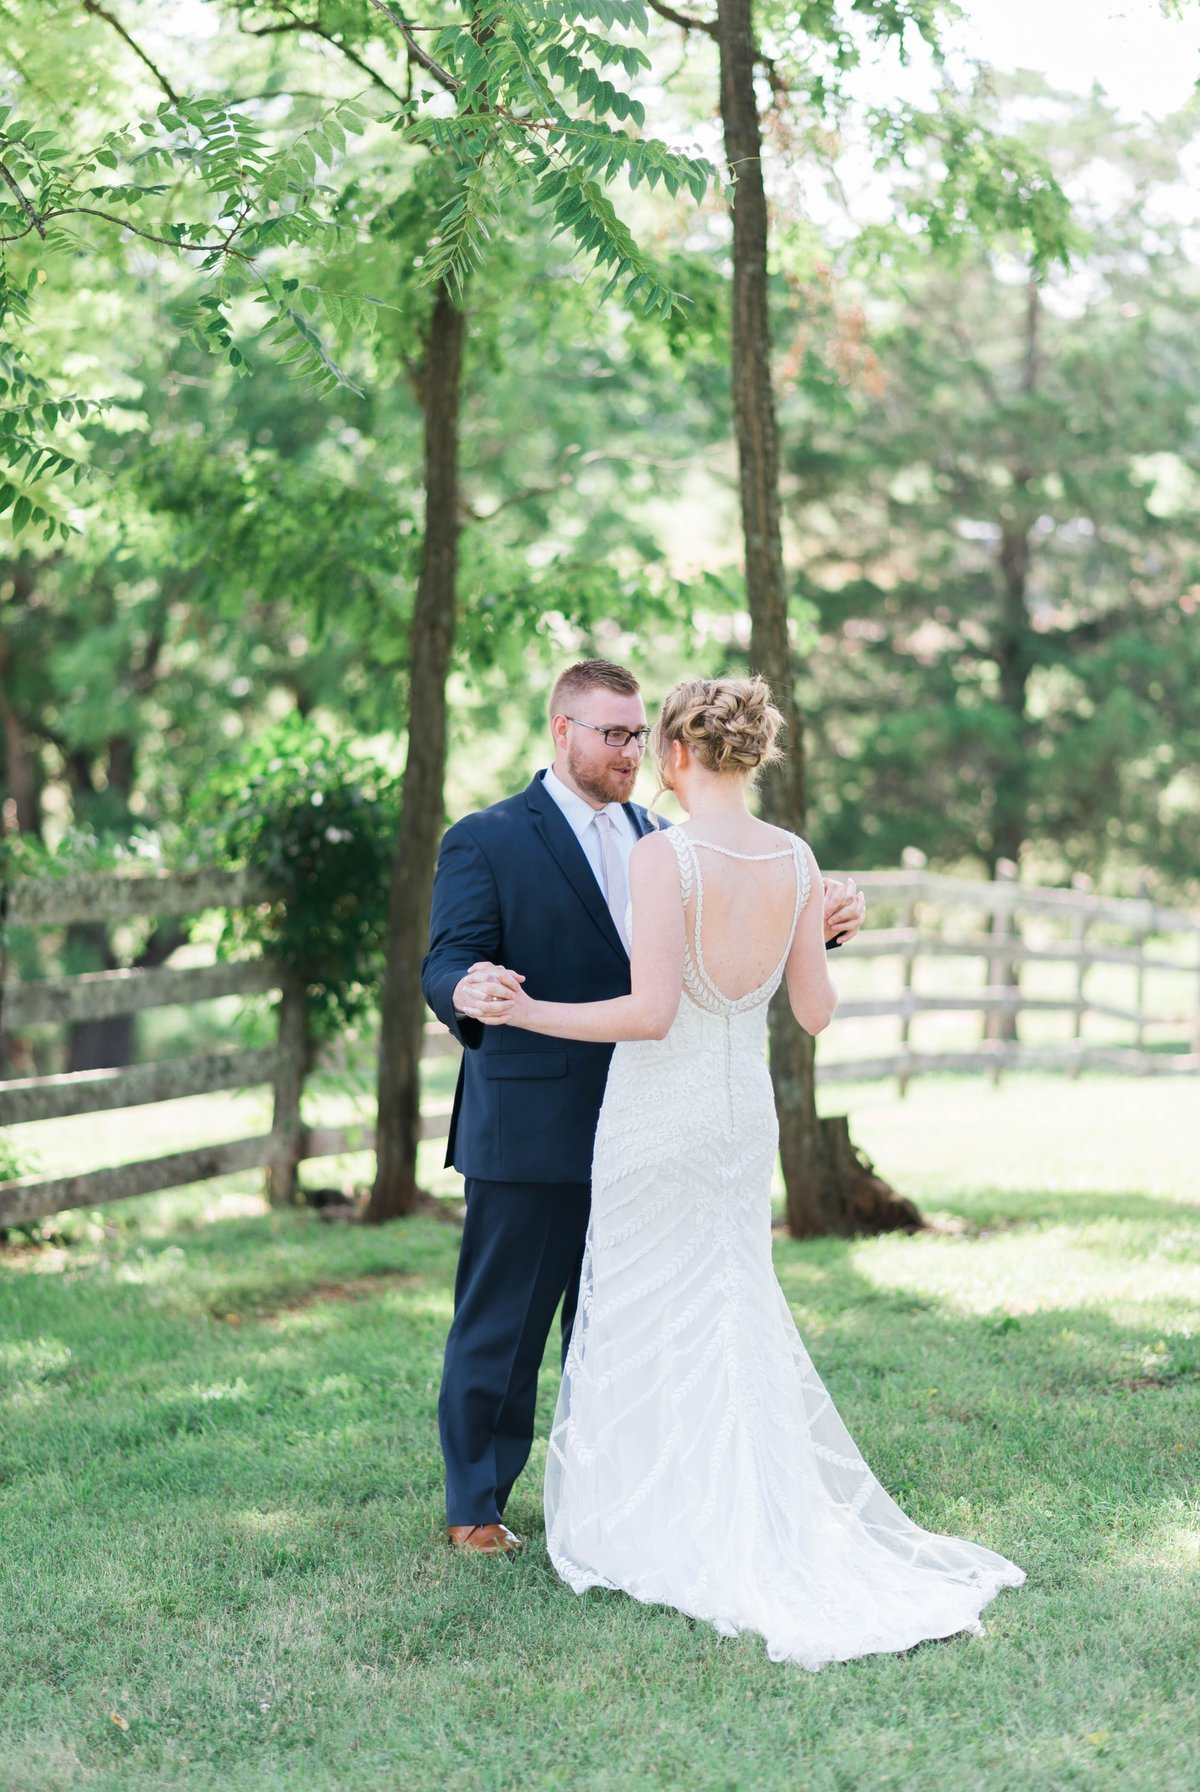 SorellaFarms_VirginiaWeddingPhotographer_BarnWedding_Lynchburgweddingphotographer_DanielleTyler+28